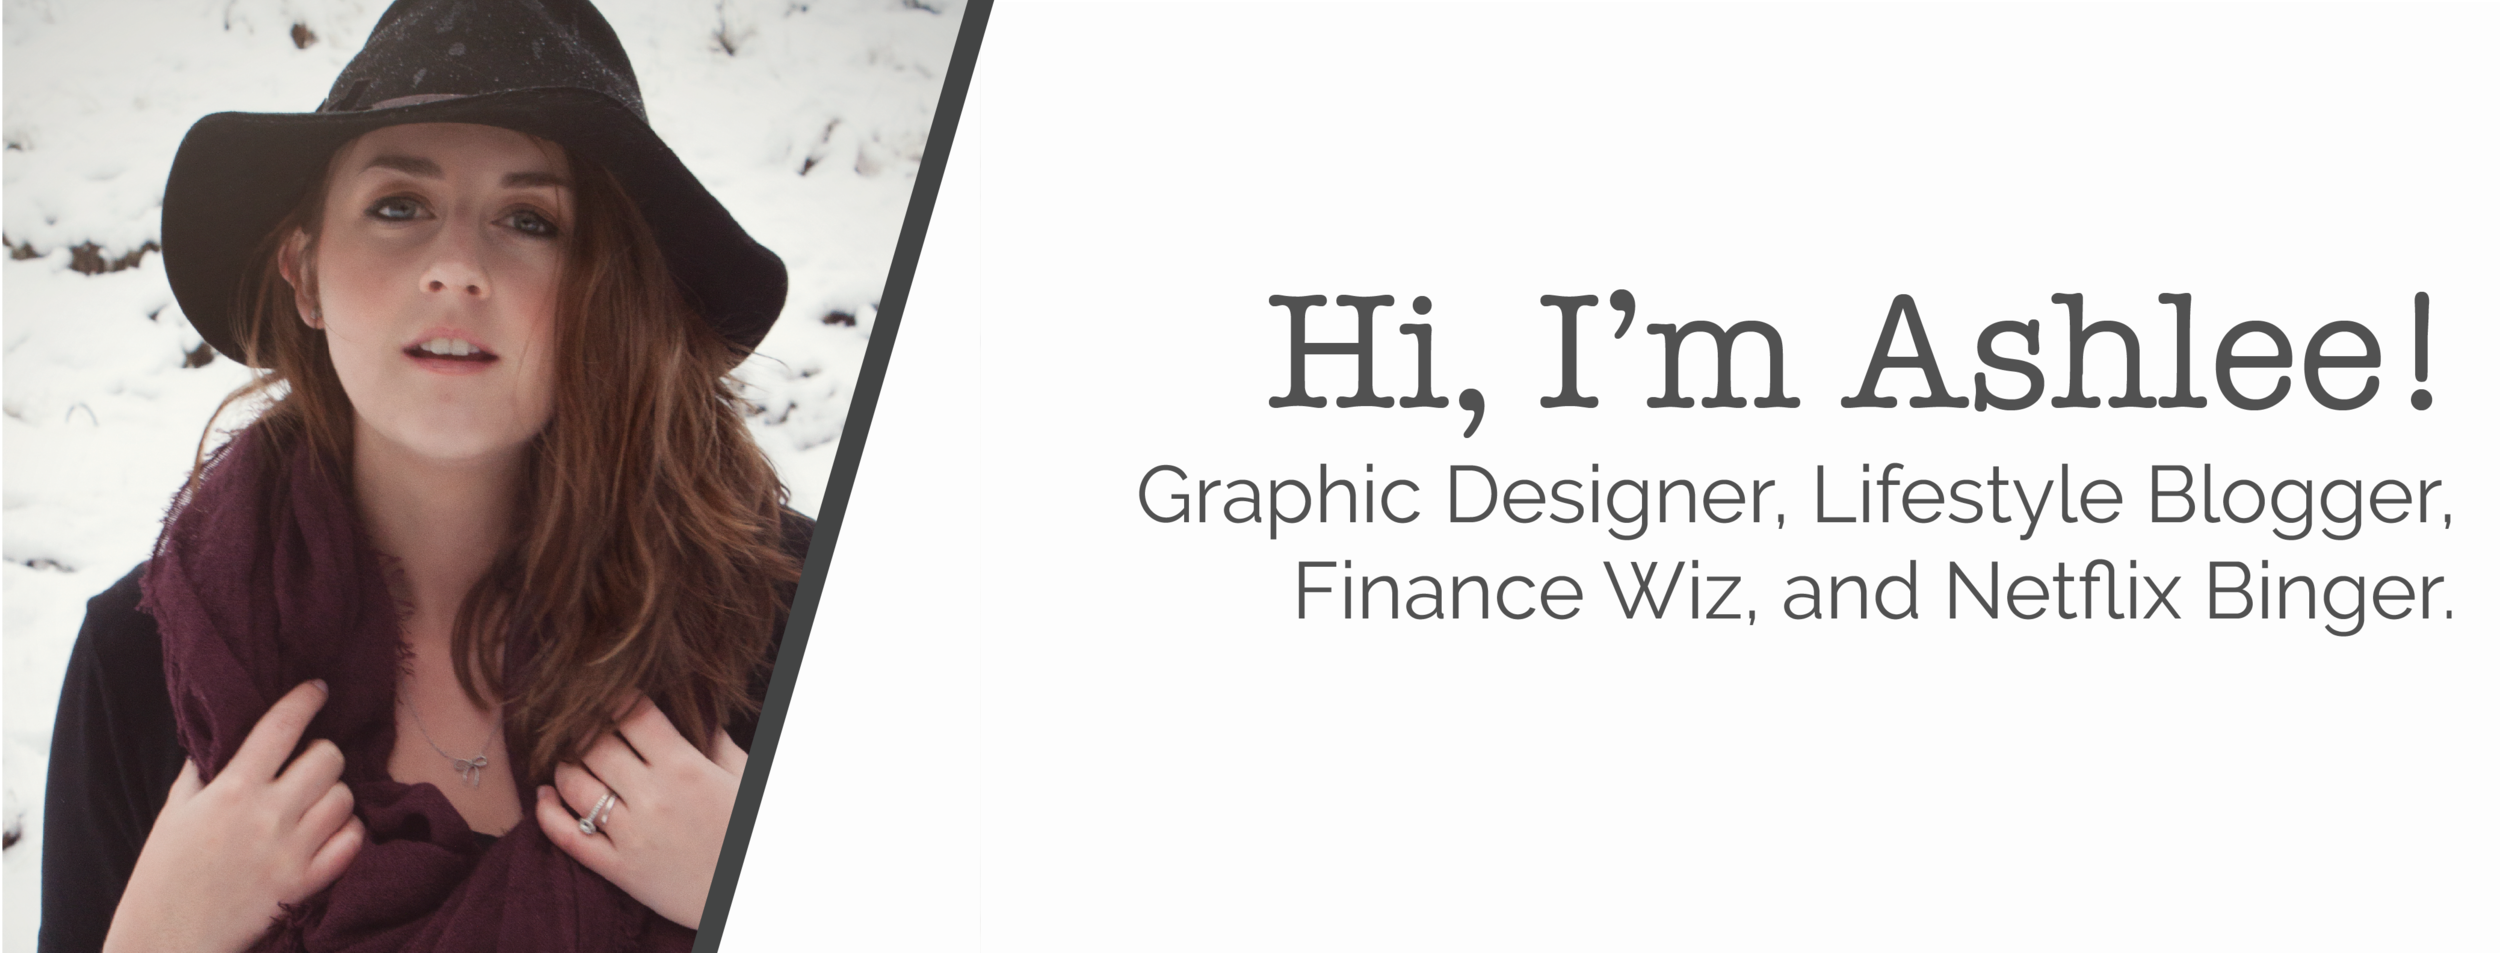 Hi, I'm ashlee! graphic designer, lifestyle blogger, finance wiz, and Netflix binger.